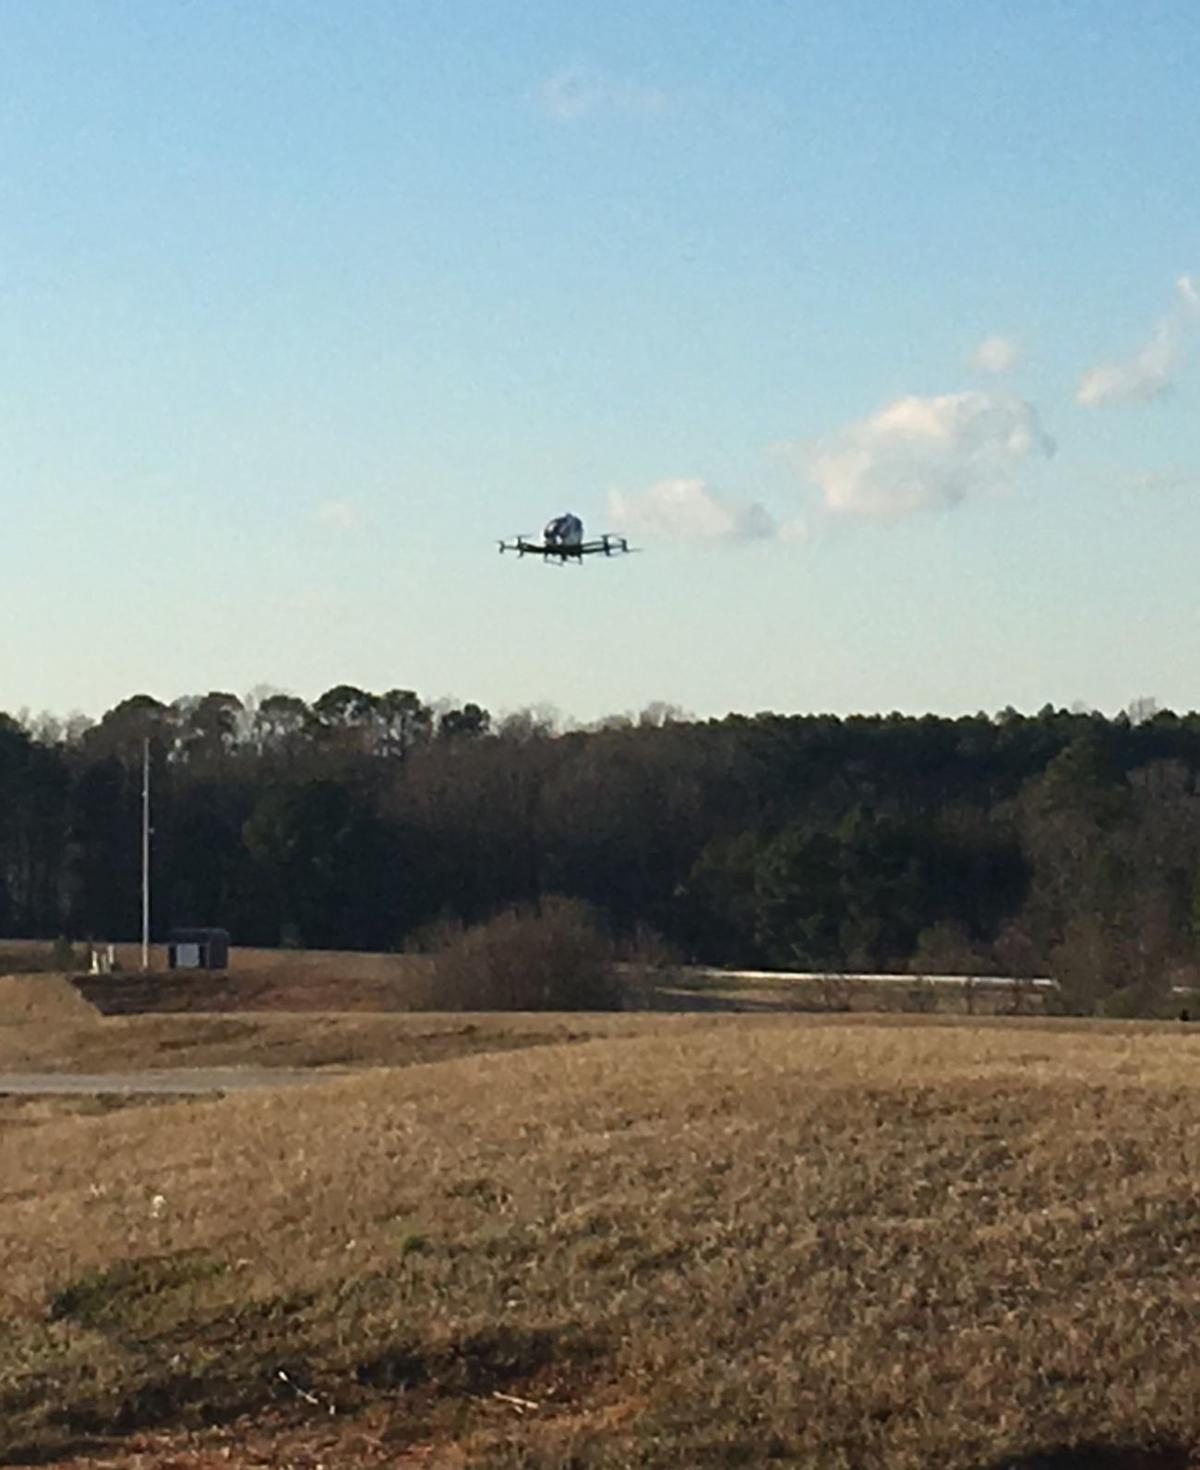 Pilotless air taxi makes public demonstration flight in Raleigh